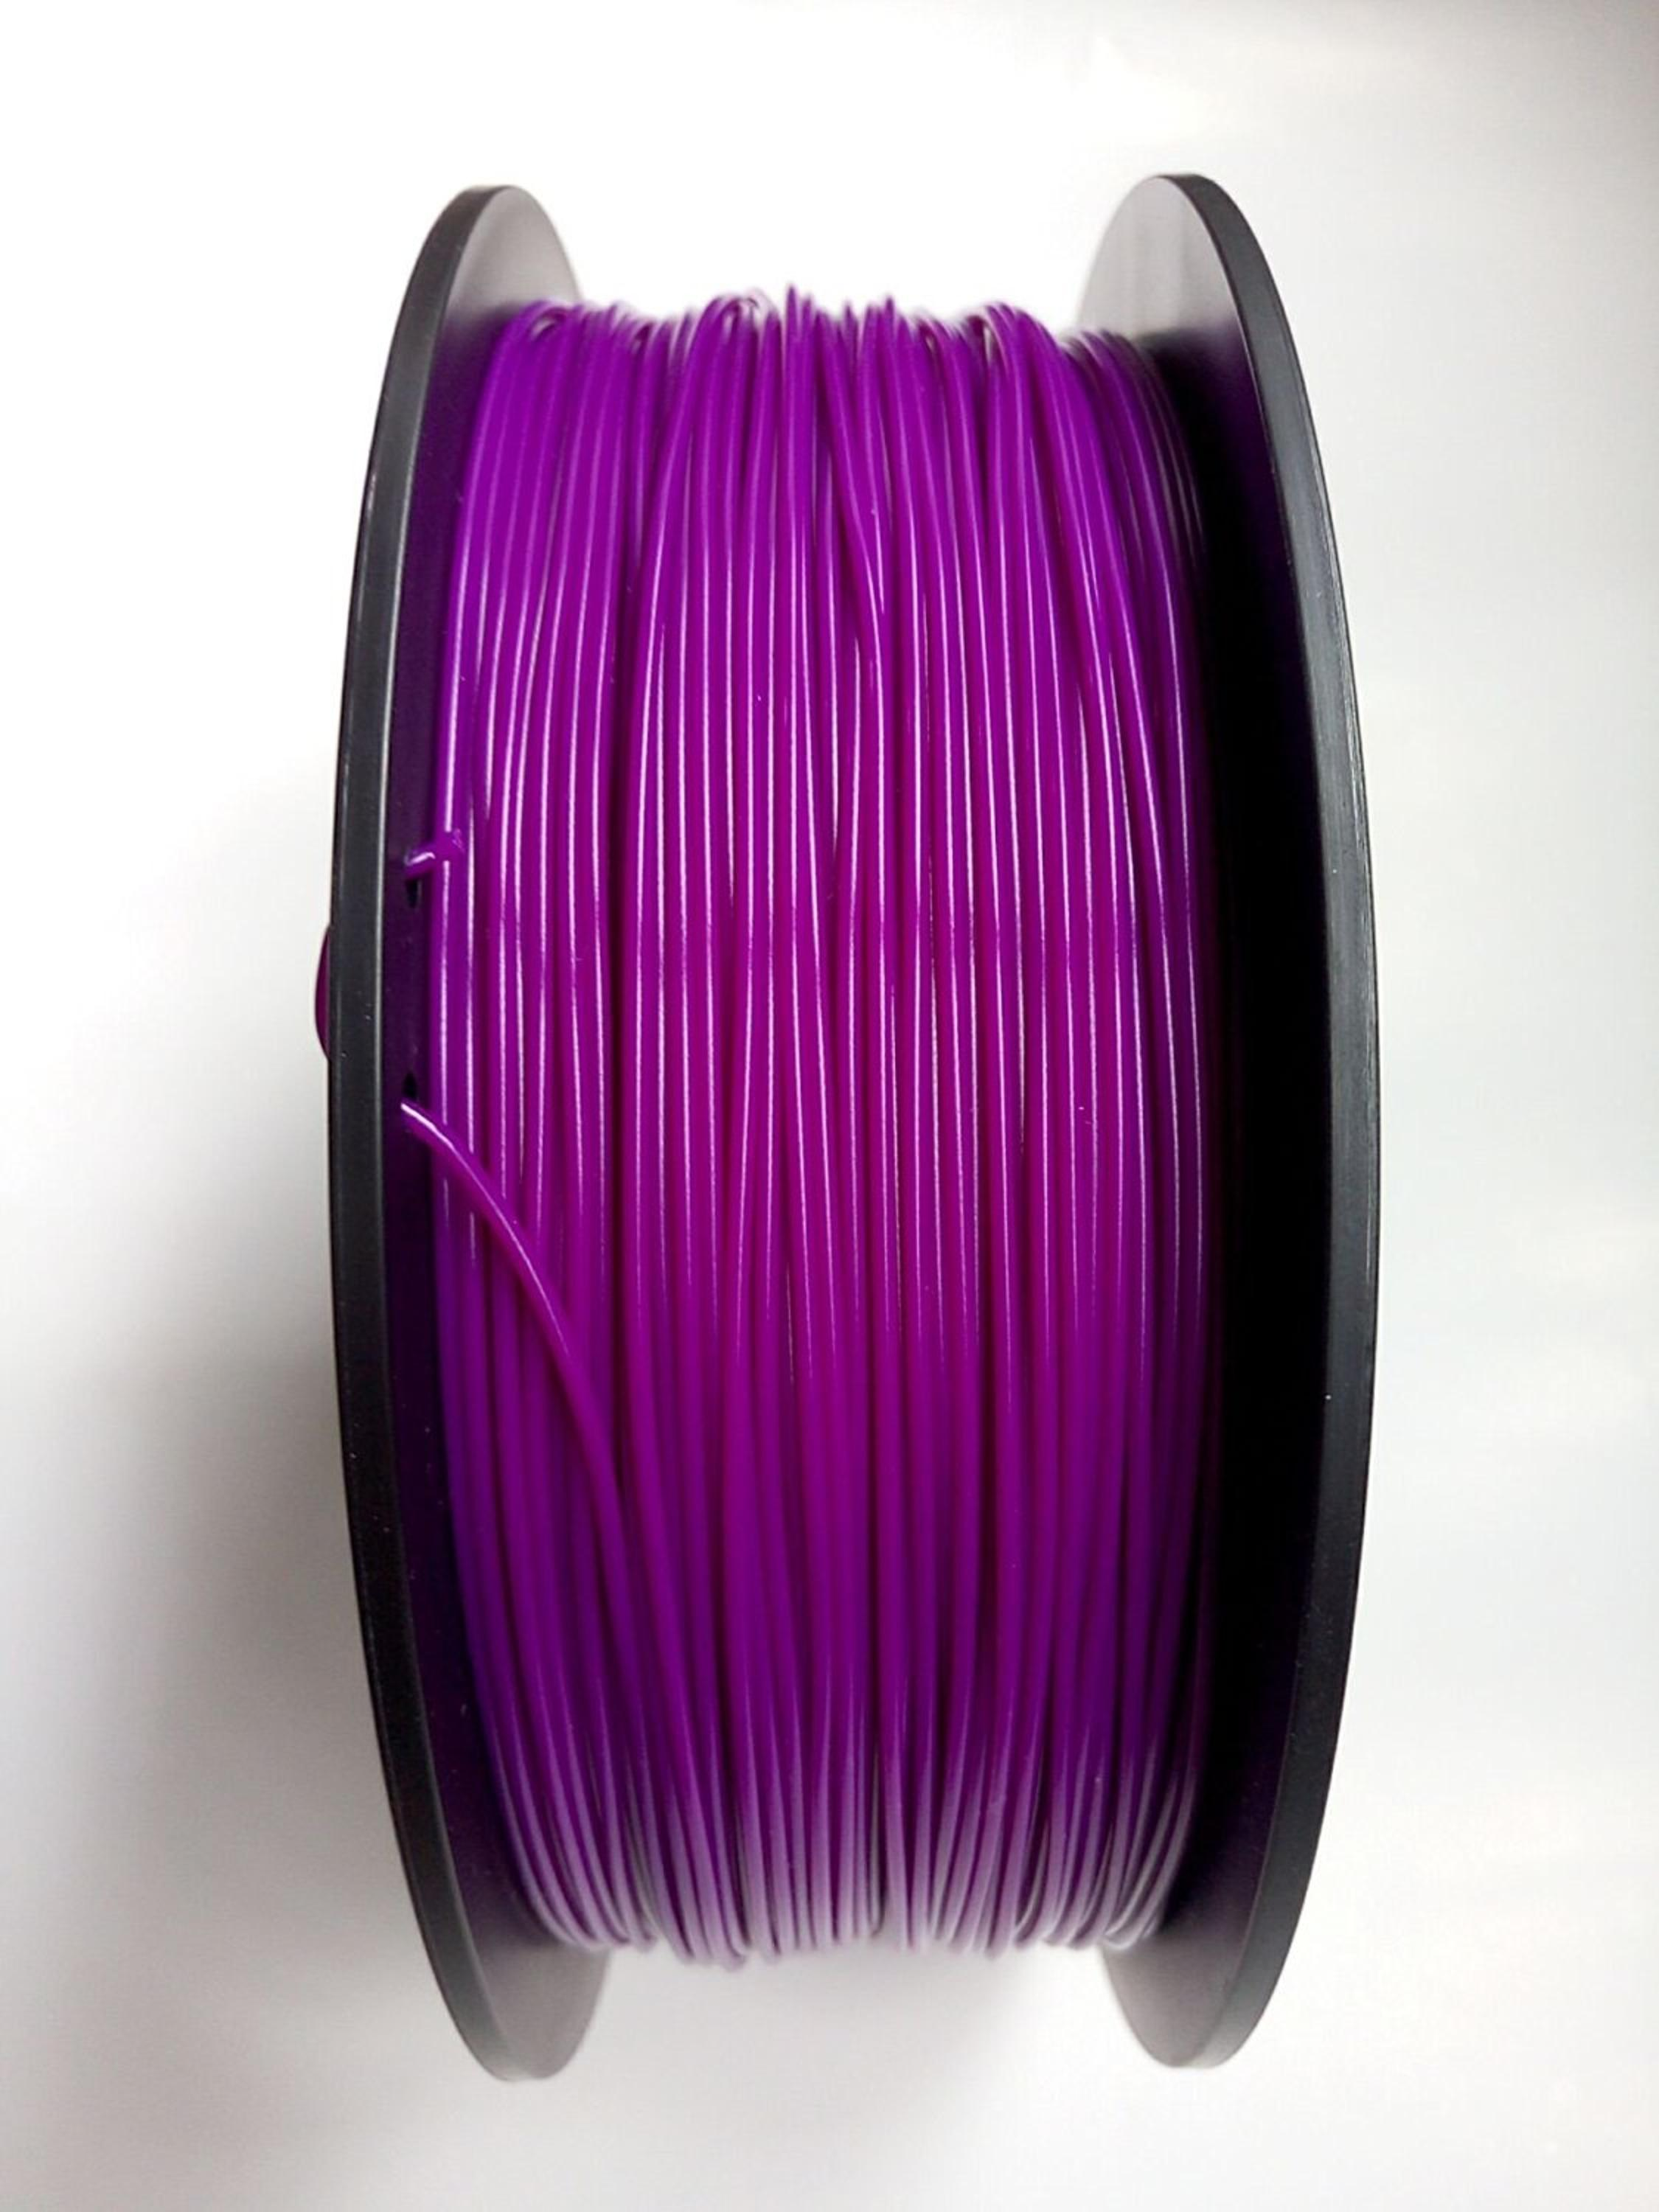 1.75mm Purple PLA 3D Printer Filament - Dimensional Accuracy +/- 0.05mm - Multiple Color Choices